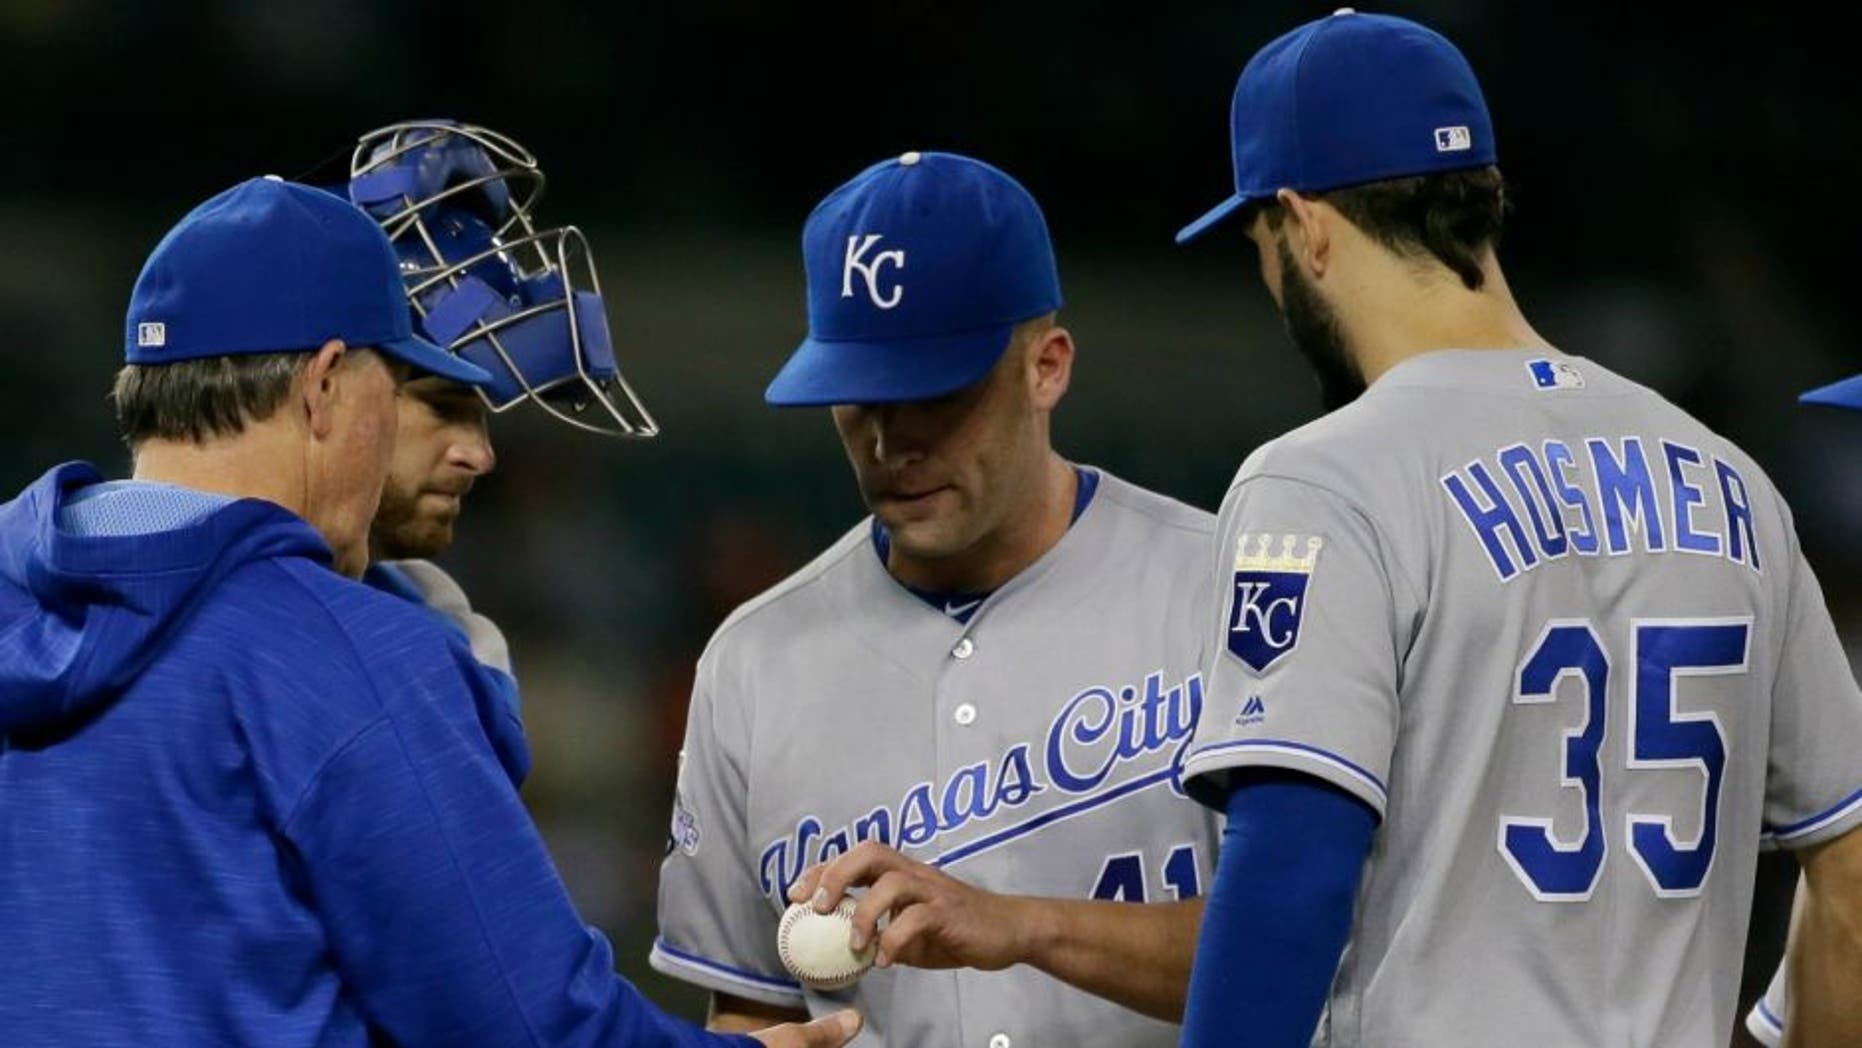 DETROIT, MI - SEPTEMBER 23: Danny Duffy #41 of the Kansas City Royals is pulled by manager Ned Yost #3 of the Kansas City Royals during the fourth inning at Comerica Park on September 23, 2016 in Detroit, Michigan. The Tigers defeated the Royals 8-3. (Photo by Duane Burleson/Getty Images)